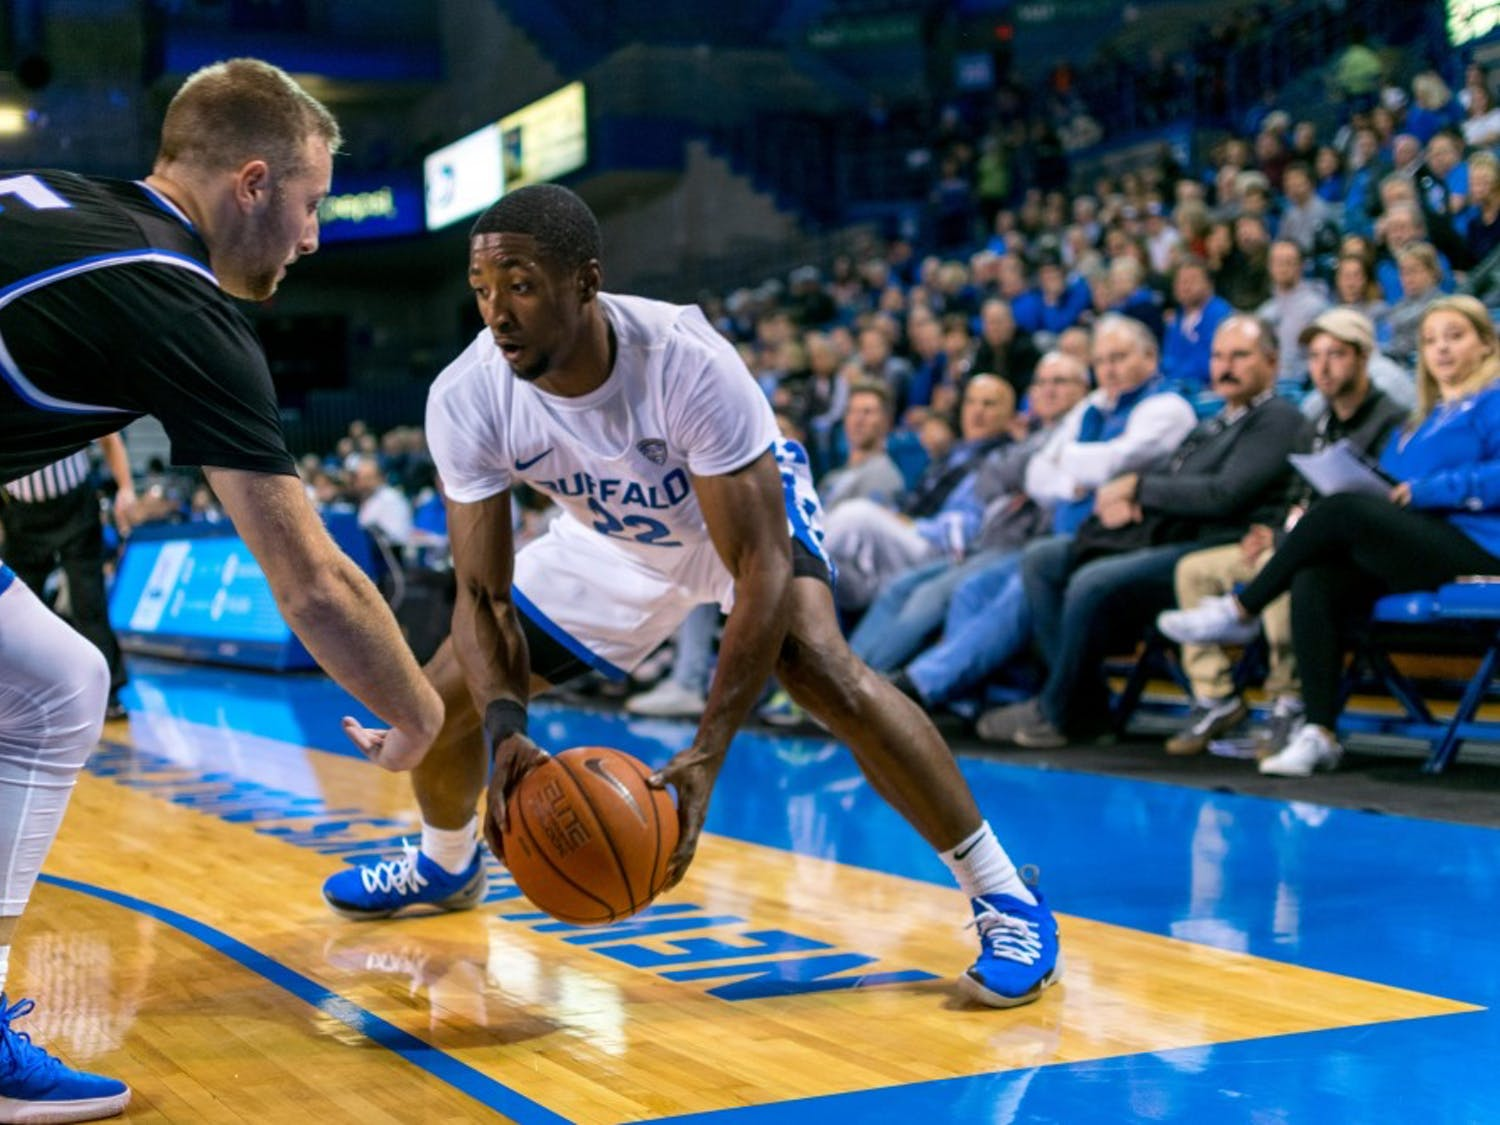 Senior guard Dontay Caruthers picks up his dribble in the corner in a previous game. Caruthers had a career-high 28 points in UB's loss against Bowling Green.